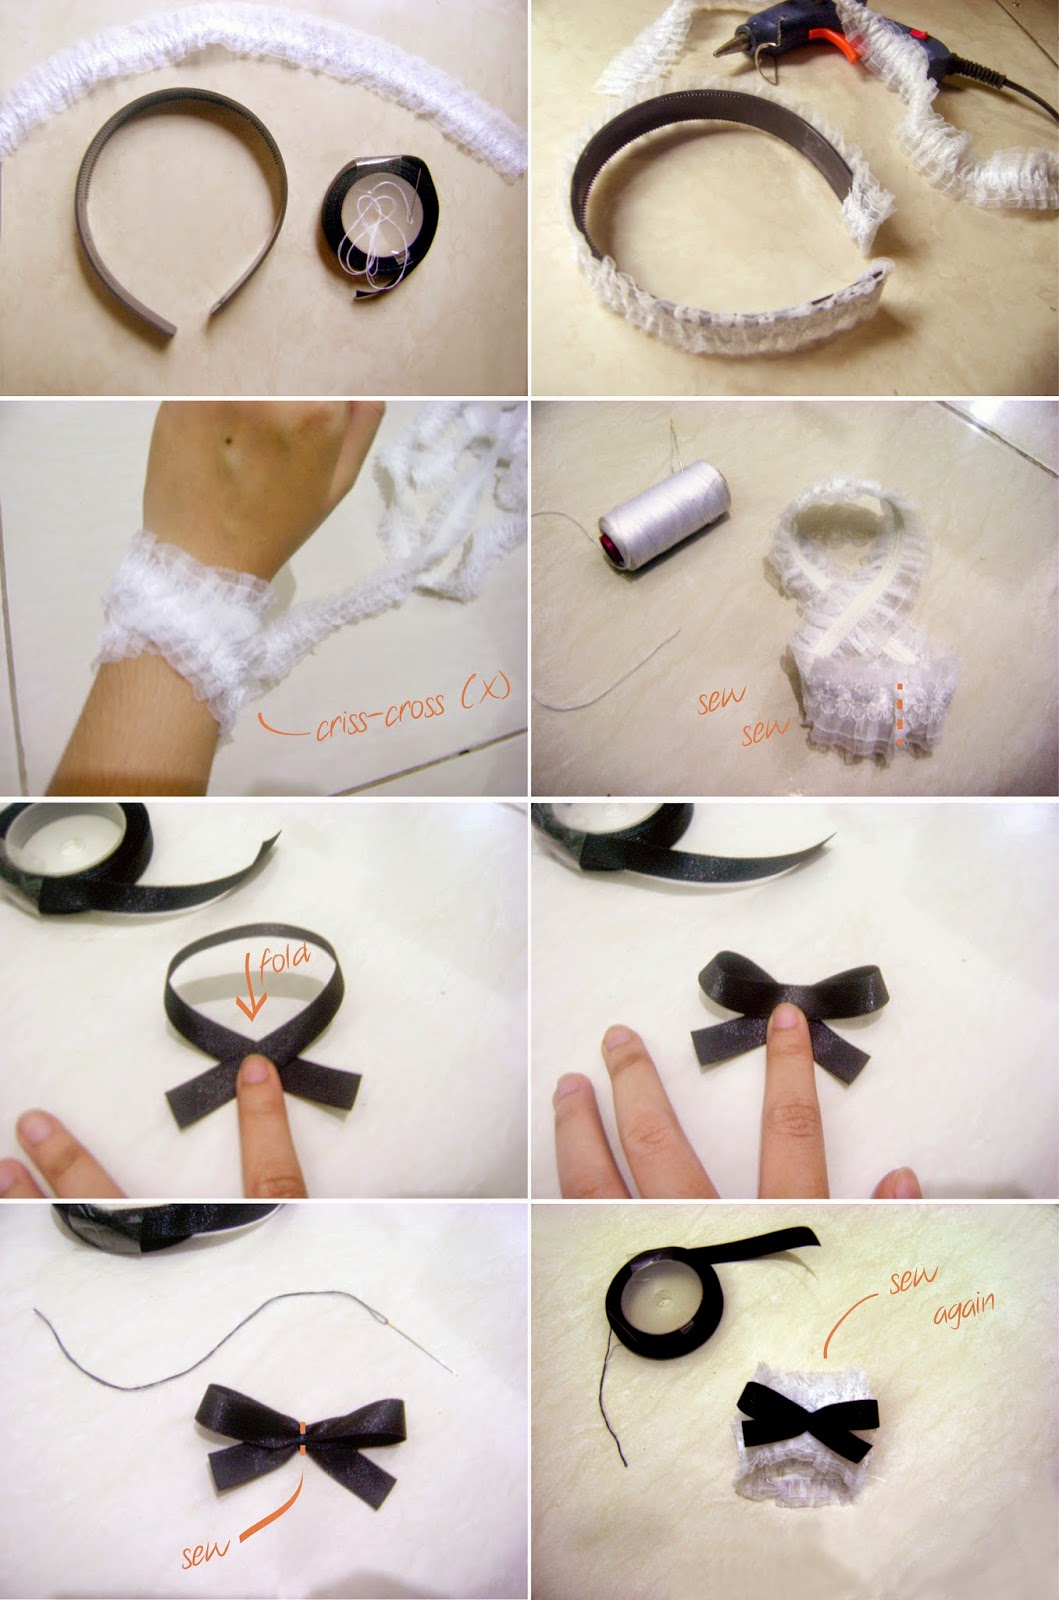 DIY Maid Costume Accessories Tutorial - Headband - Wrist Cuff